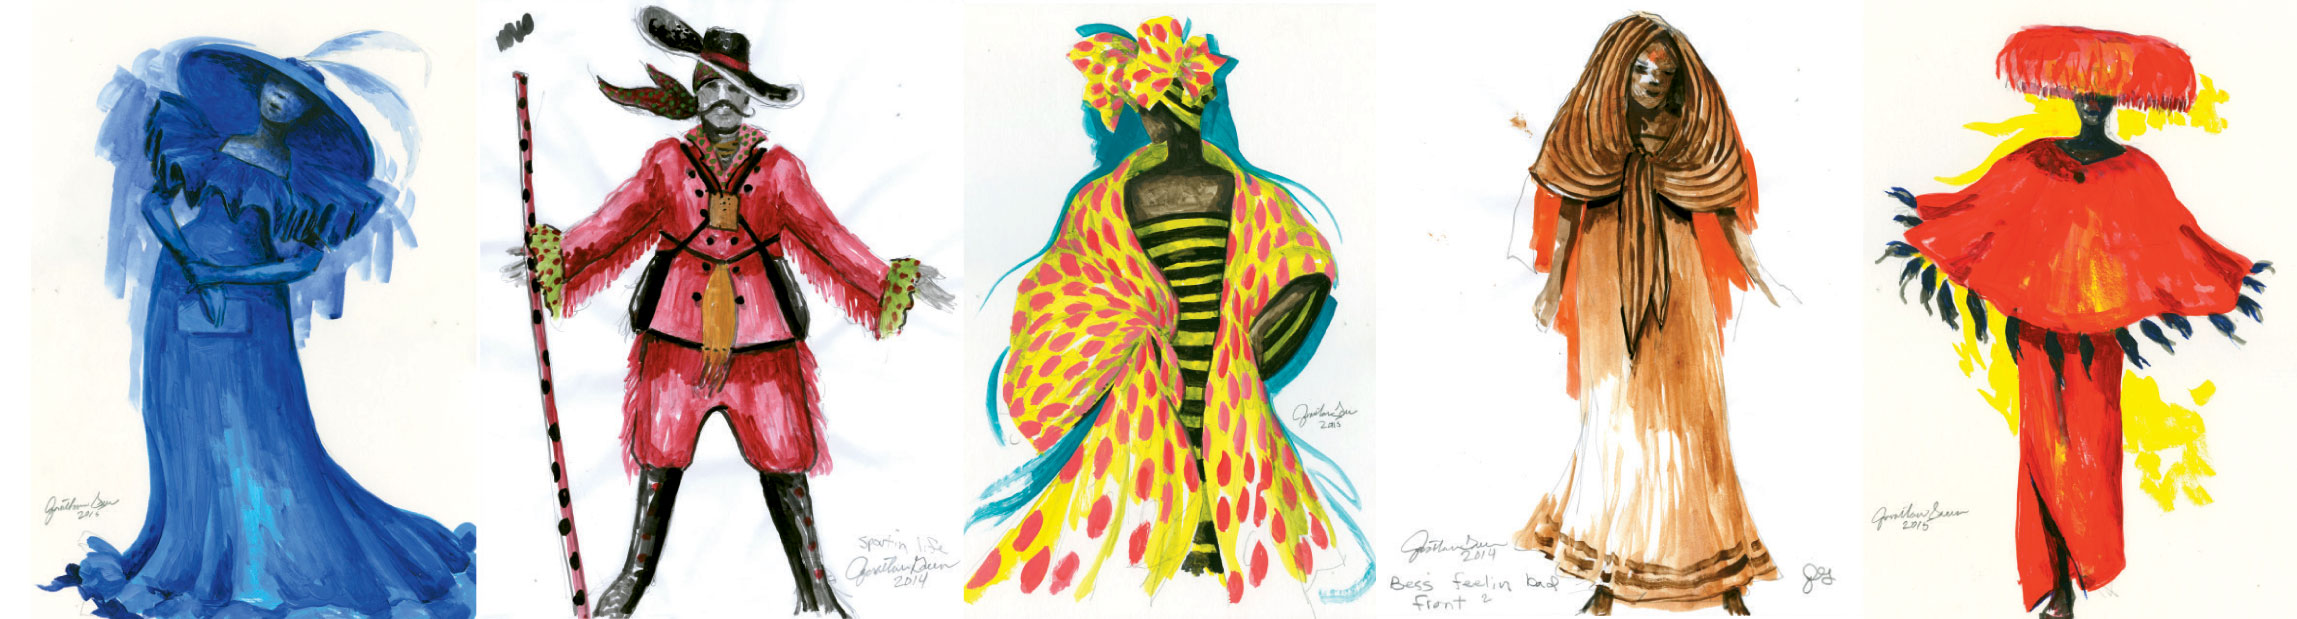 Costume designer Annie Simone will take her cues from Green's interpretive sketches and his more specific costume sketches for ensemble members and lead characters, such as Sportin' Life and Bess.